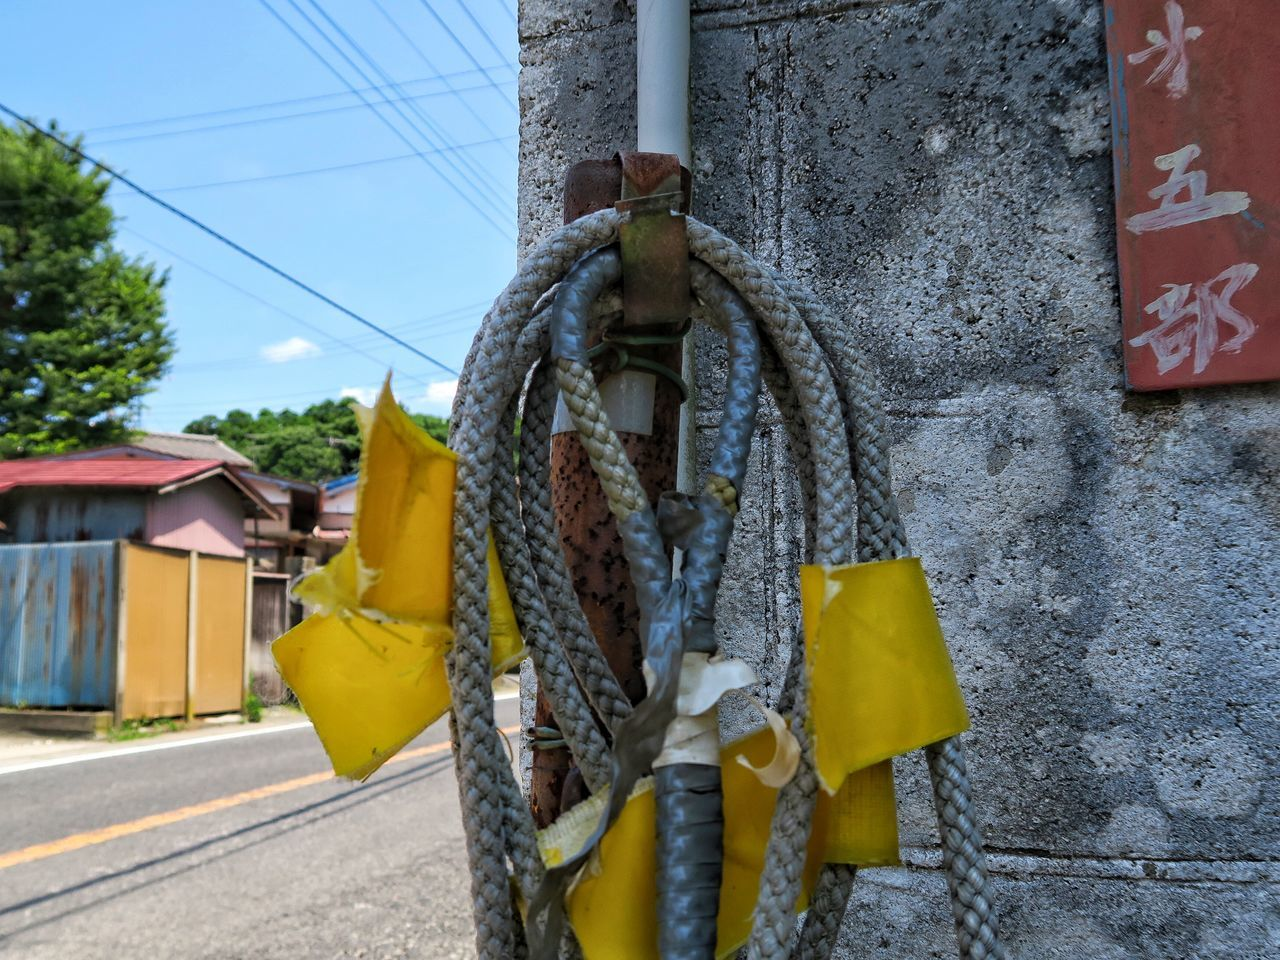 built structure, rope, day, hanging, outdoors, architecture, yellow, no people, building exterior, tied up